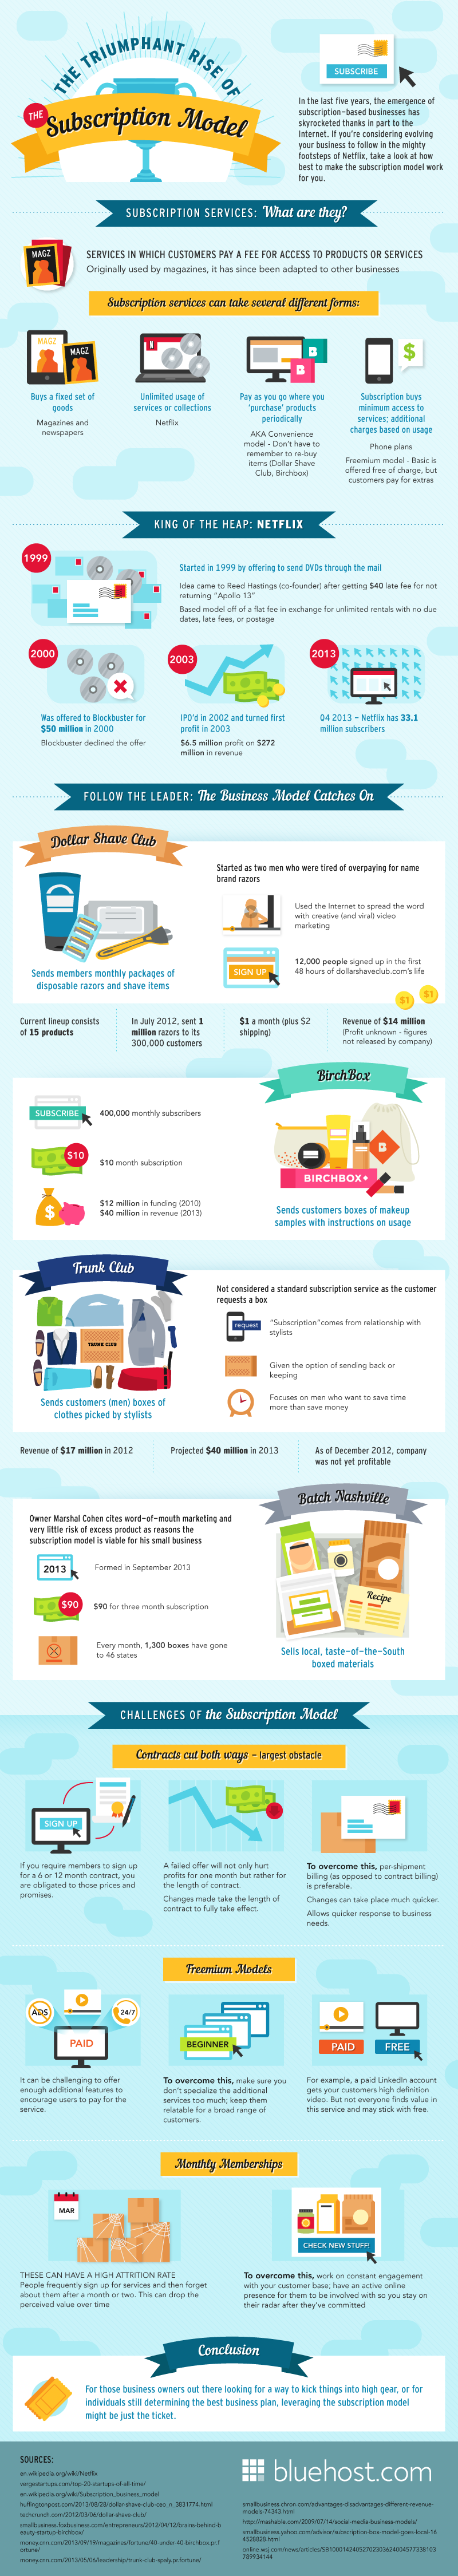 The Triumphant Rise of the Subscription Model - #Infographic